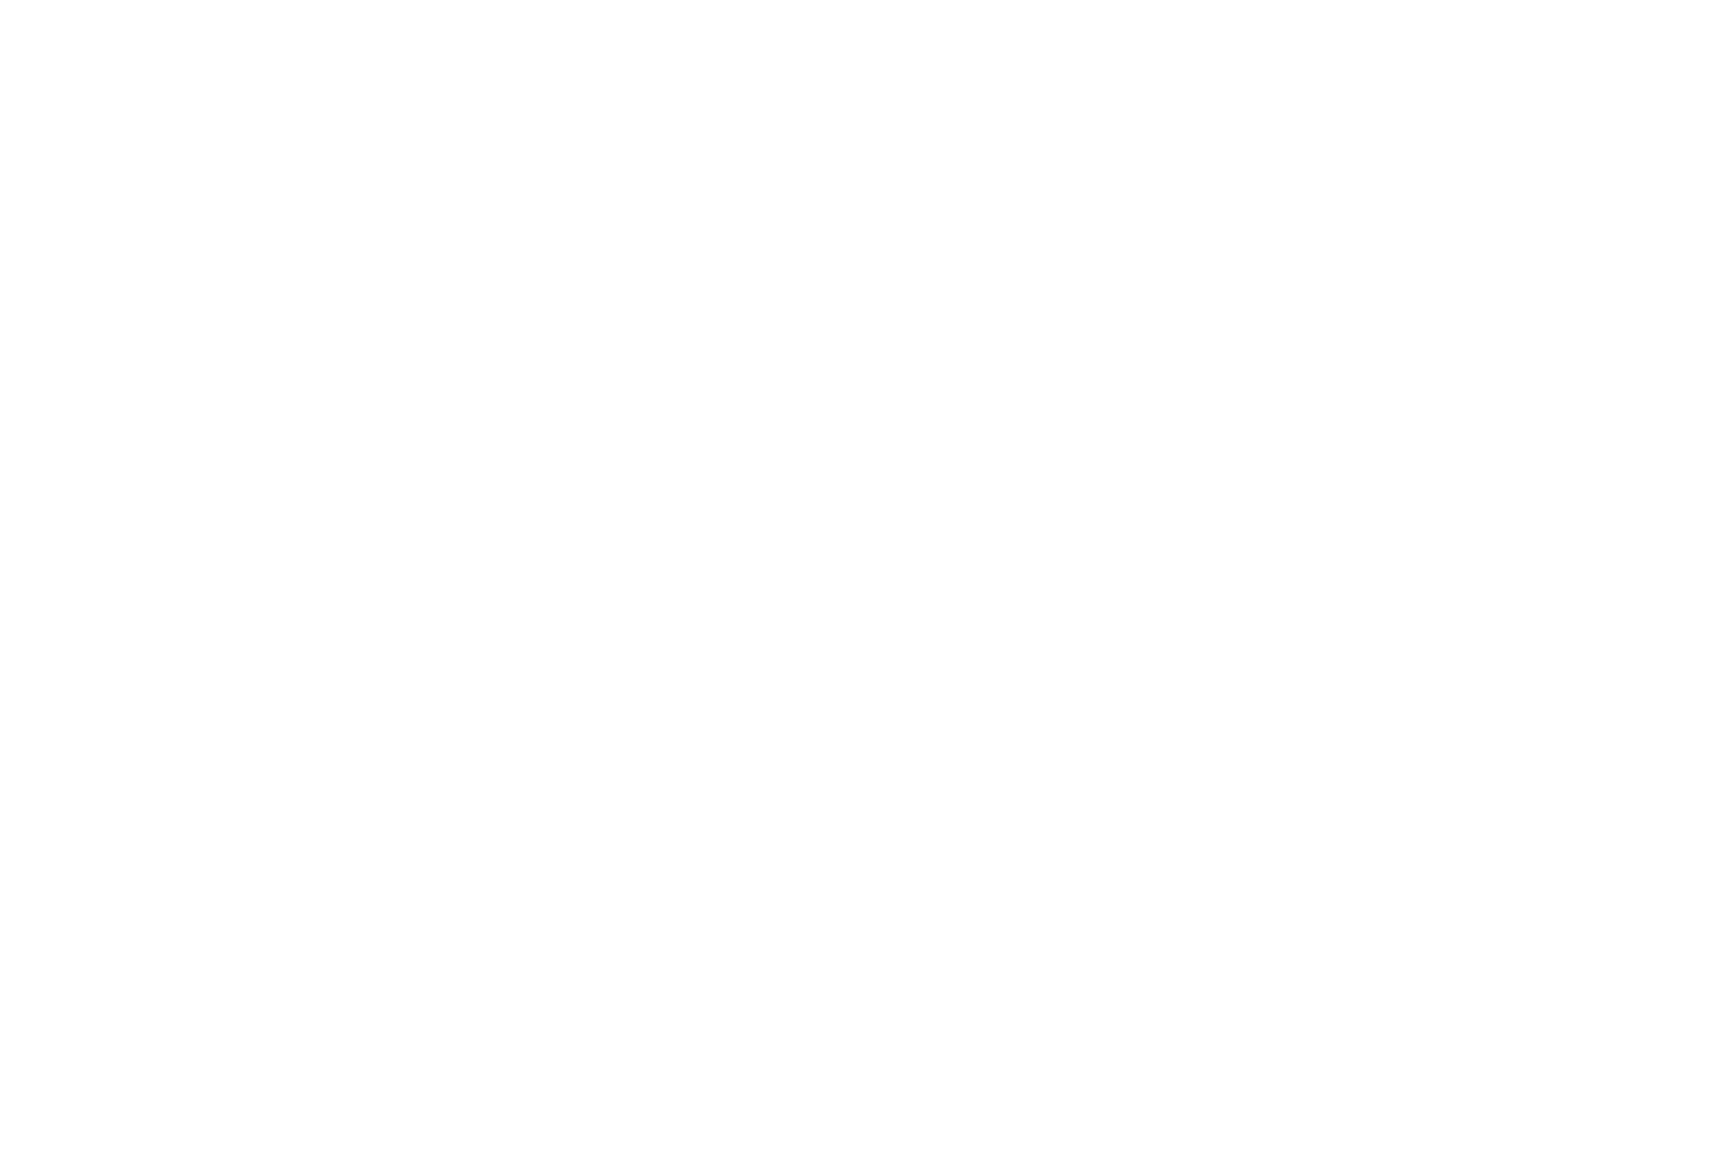 AWARD OF EXCELLENCE - BEST DIRECTOR  - HOLLYWOOD FILM COMPETITION 2016.png